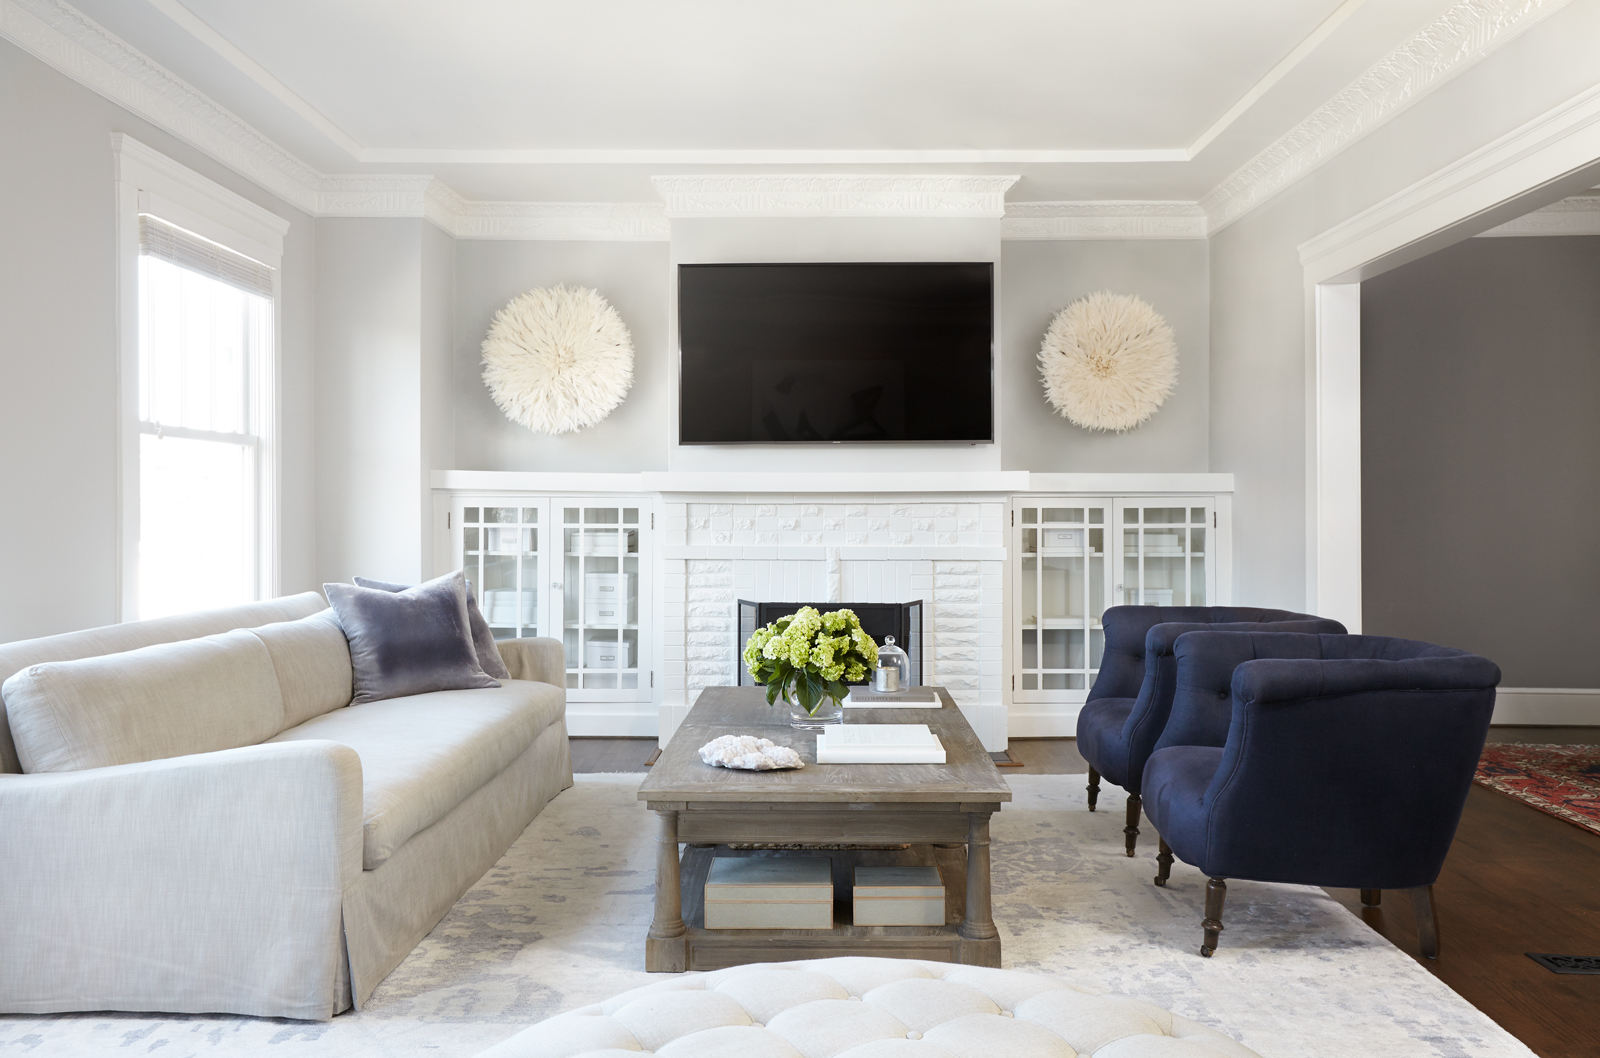 marina paige kelly interior design